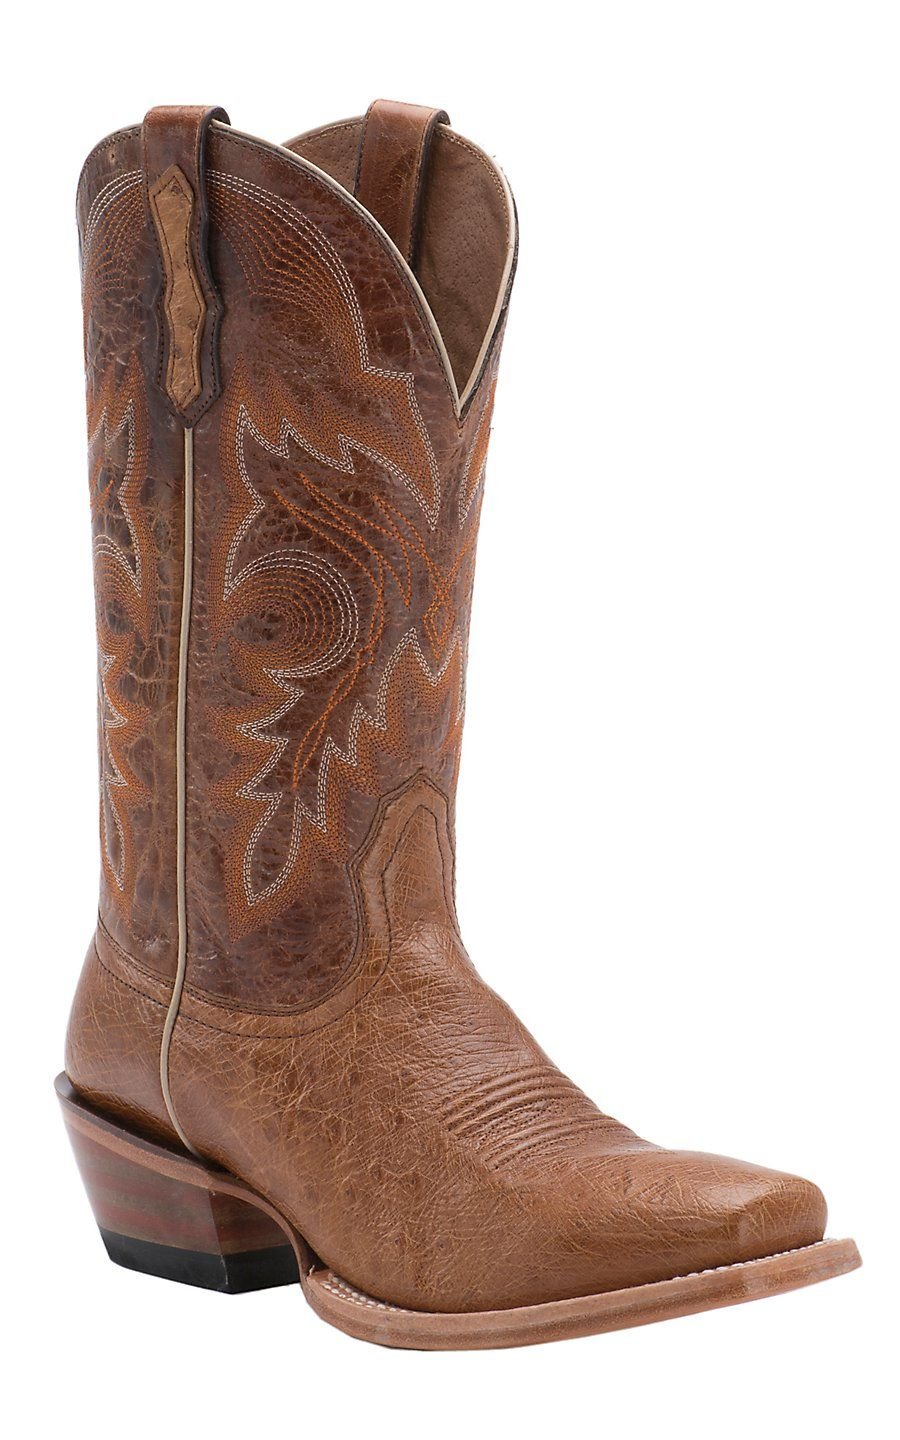 Ariat Ranchero Antique Saddle Smooth Ostrich Punchy Square Toe Western Boot Boots Snakeskin Boots Ostrich Boots